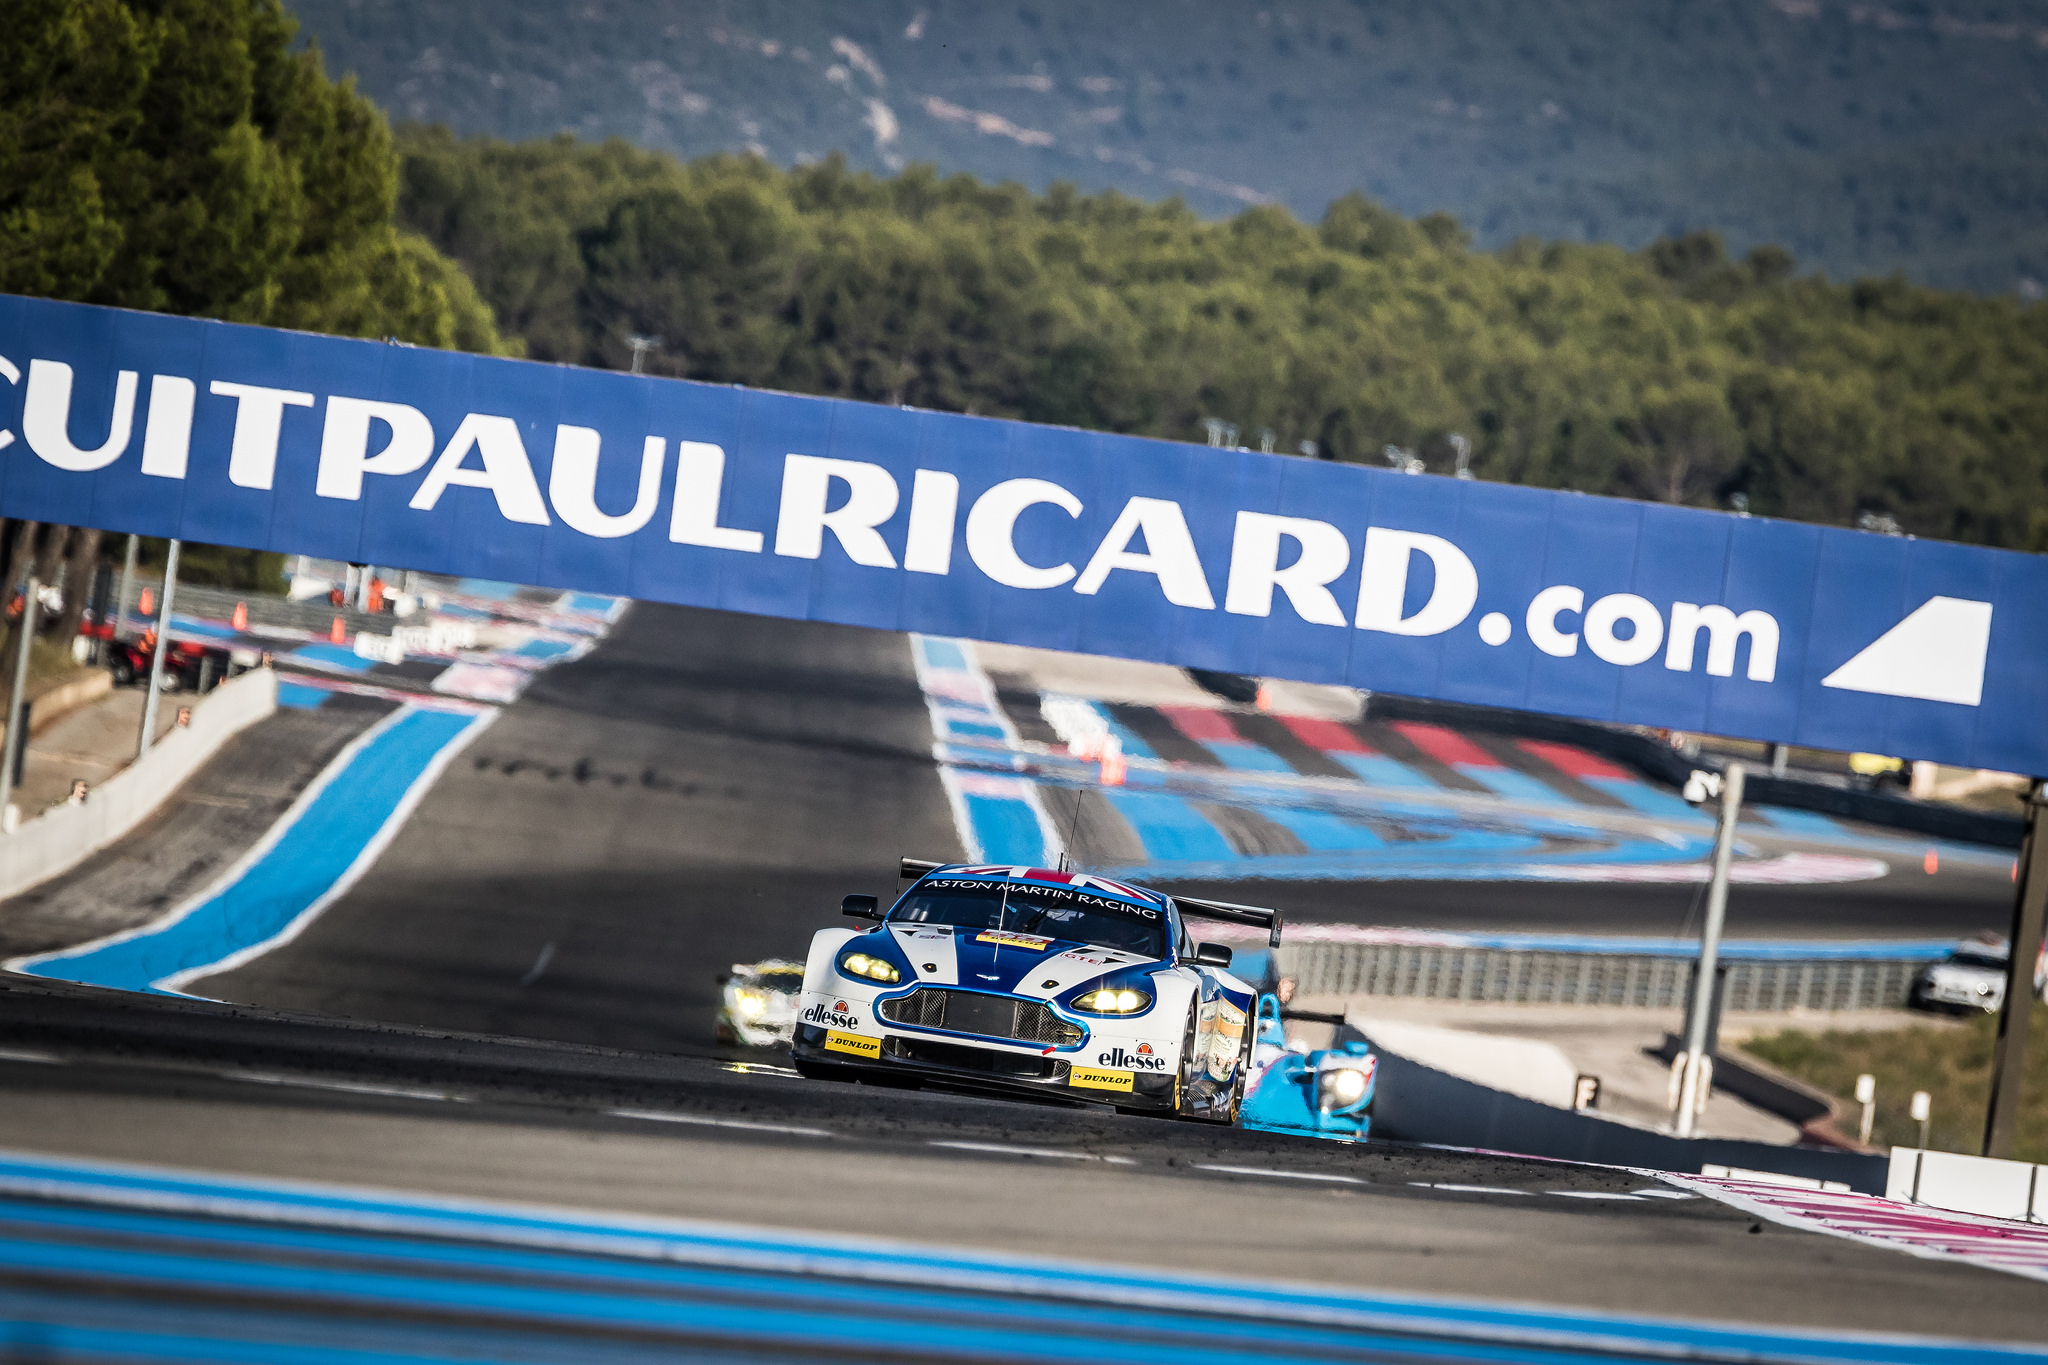 Le Castellet Circuit : Pole position and a podium at paul ricard grange blog